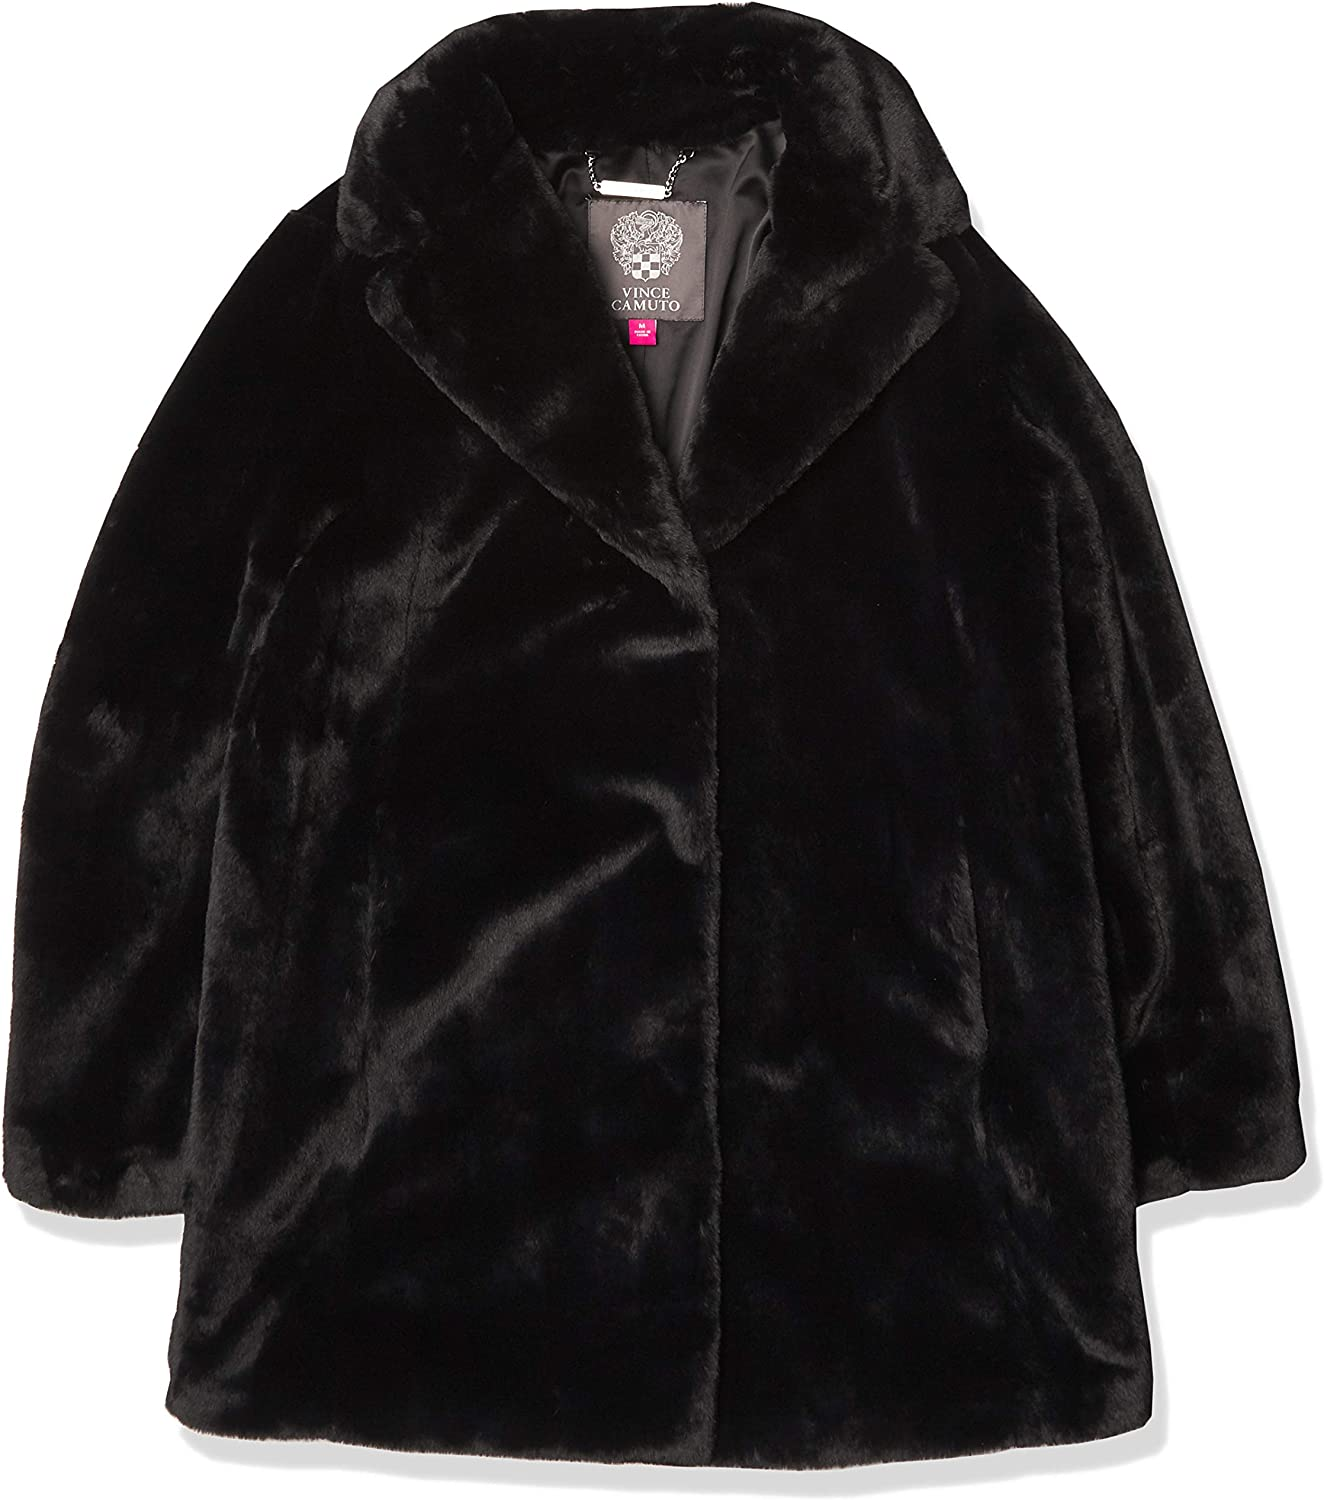 Vince Camuto Kids Outerwear Women's Chic and Warm Faux Fur Jacket